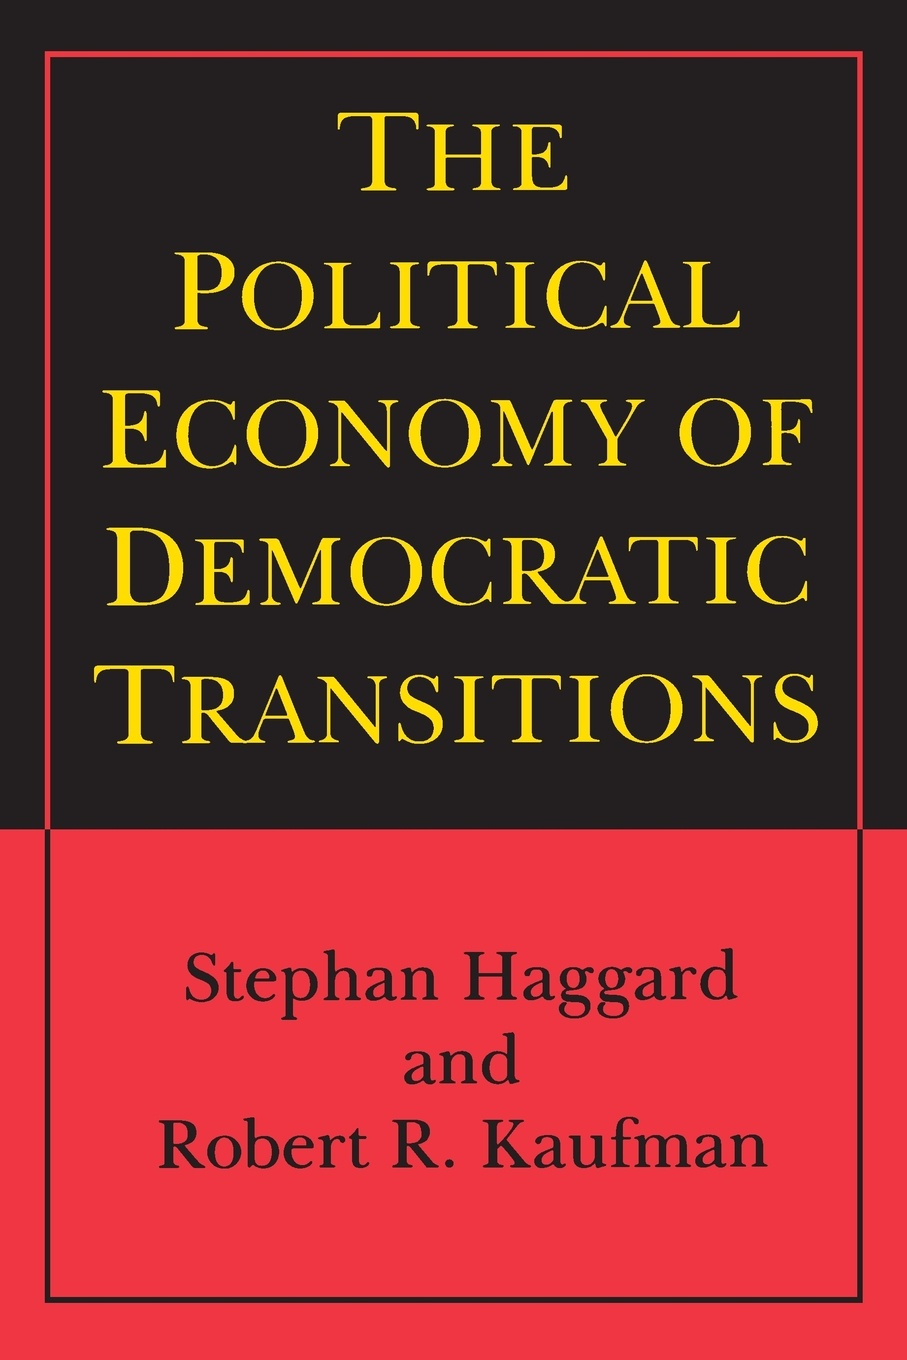 Stephan Haggard, Robert R. Kaufman The Political Economy of Democratic Transitions robert perryman can we reconcile neoliberalism and marine conservation conflict between economic and environmental interests